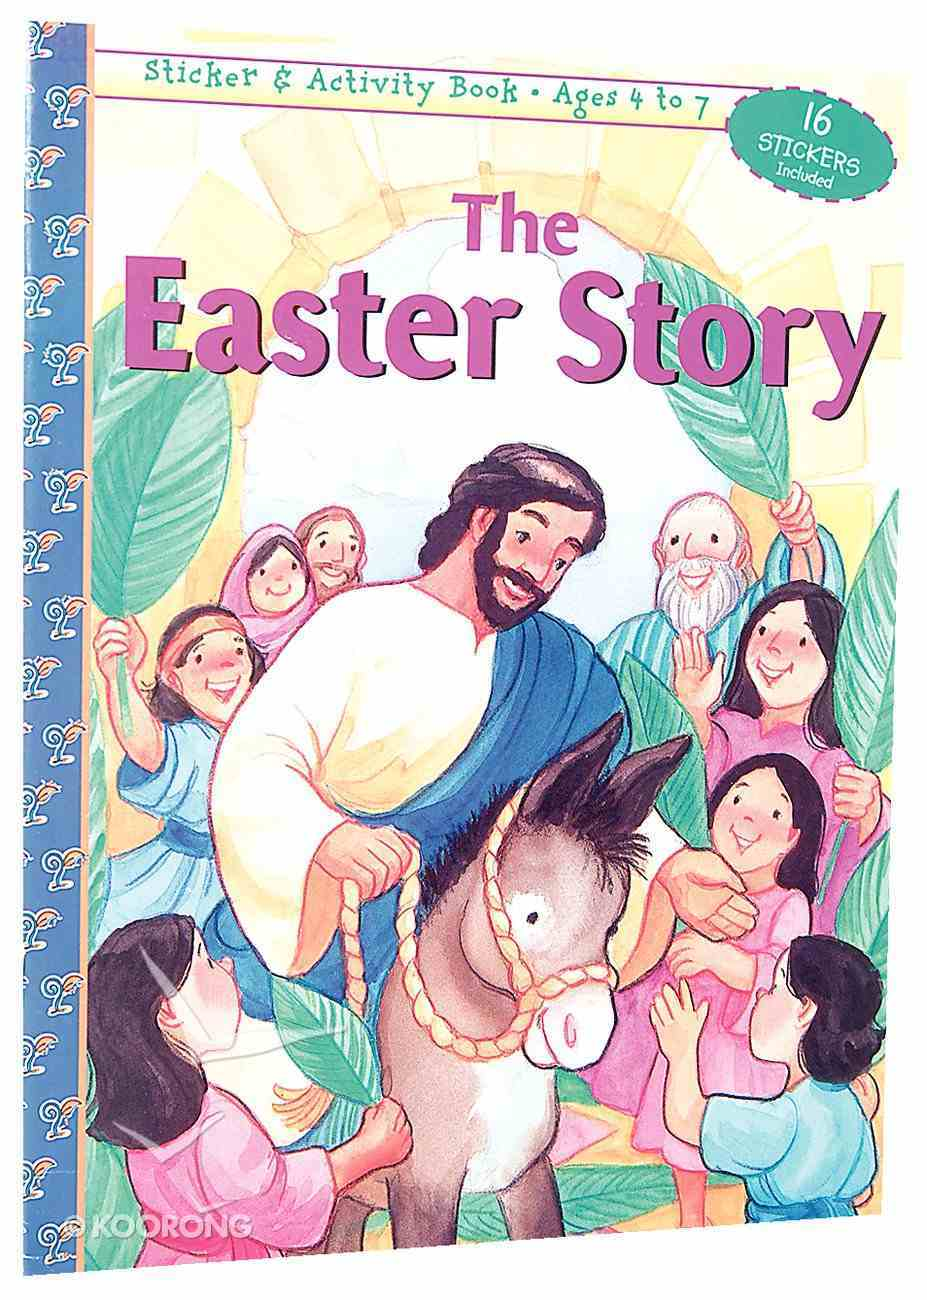 The Easter Story (Sticker & Activity Series) Paperback